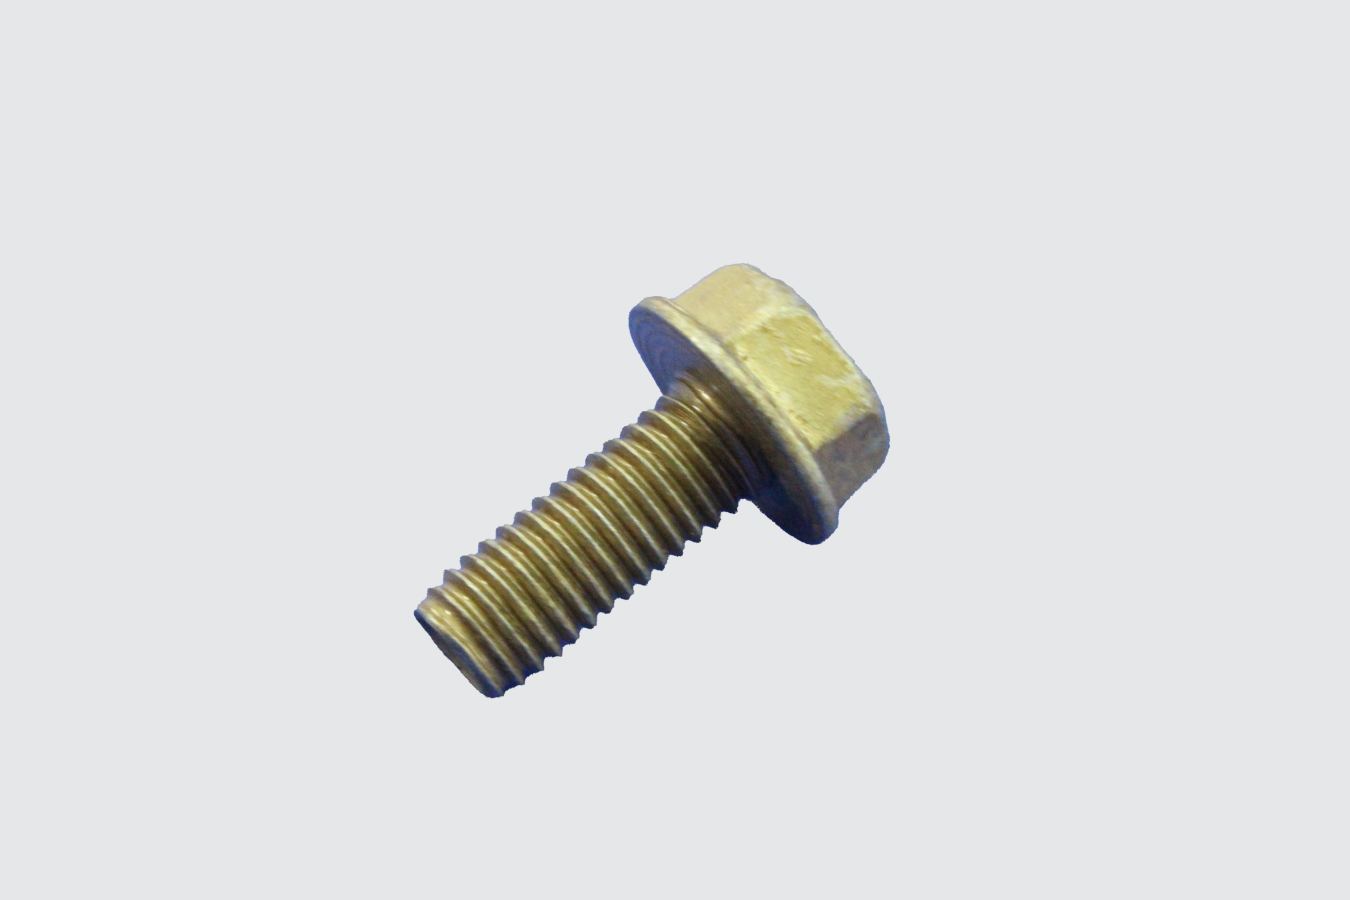 35279025 - SCREW, M8-1.25 X 20 MM LG WASHER HEX HD TAPPING BRONZE